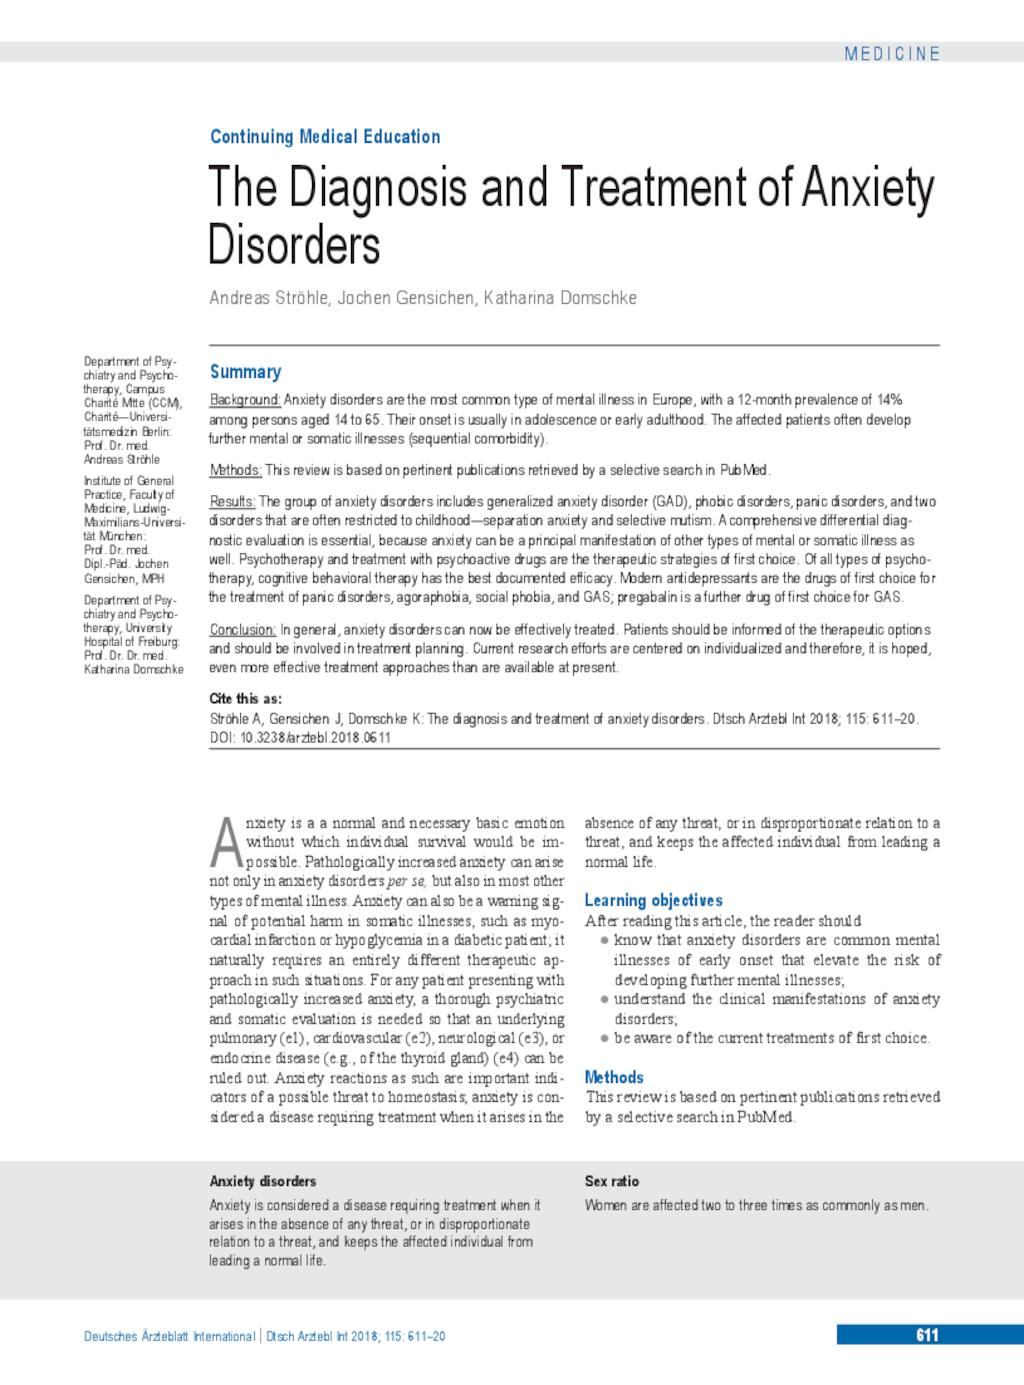 The Diagnosis and Treatment of Anxiety Disorders (14 09 2018)